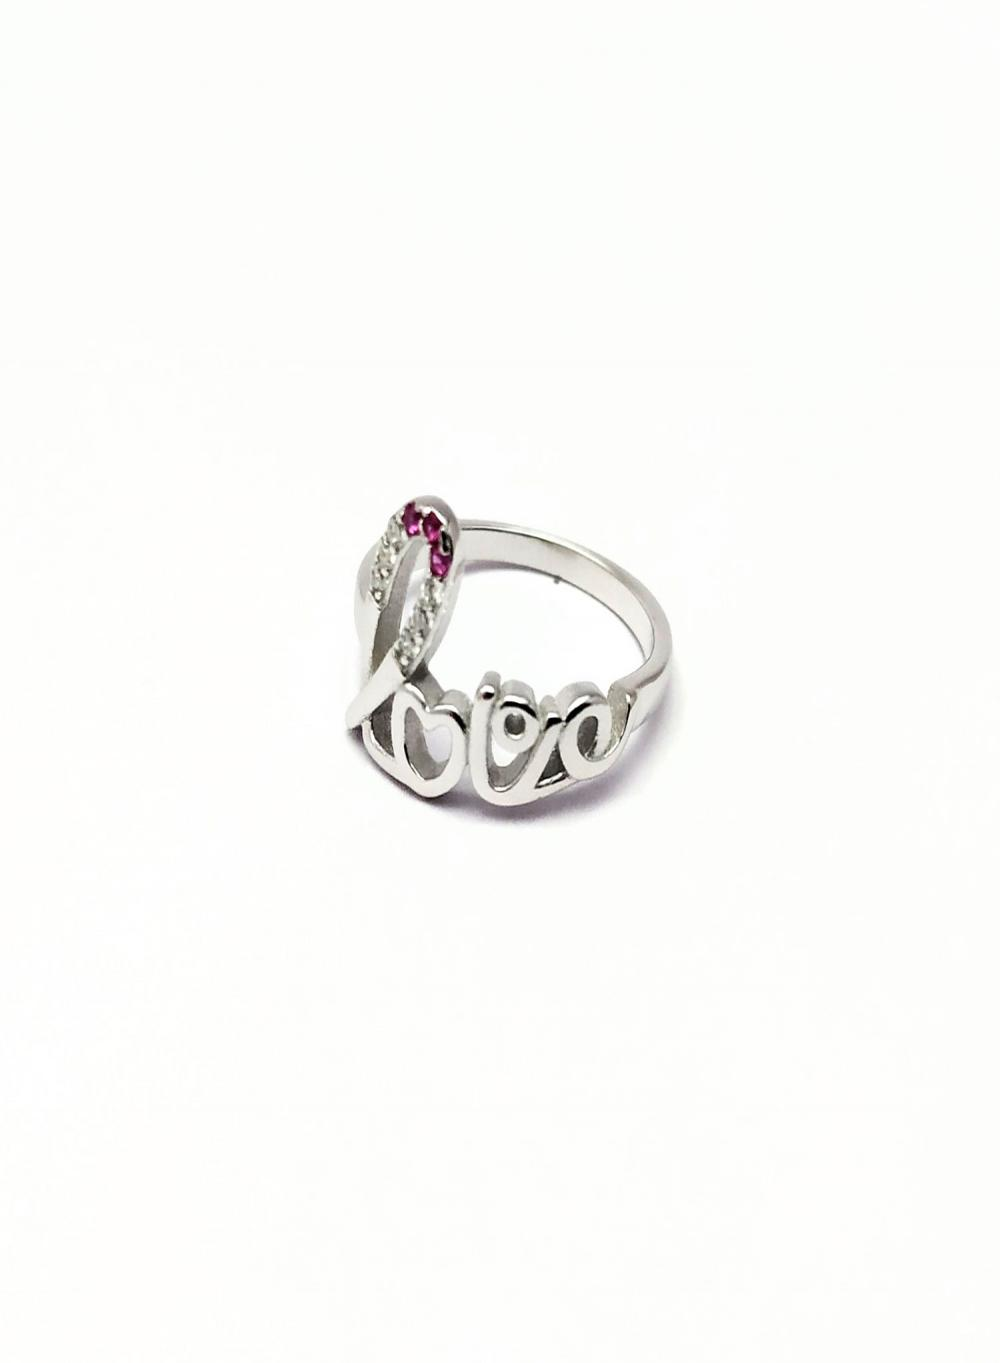 a590259657 Cursive Love Ring, Silver Love Ring, Love Ring, Sterling Silver Rings, For  She/Her